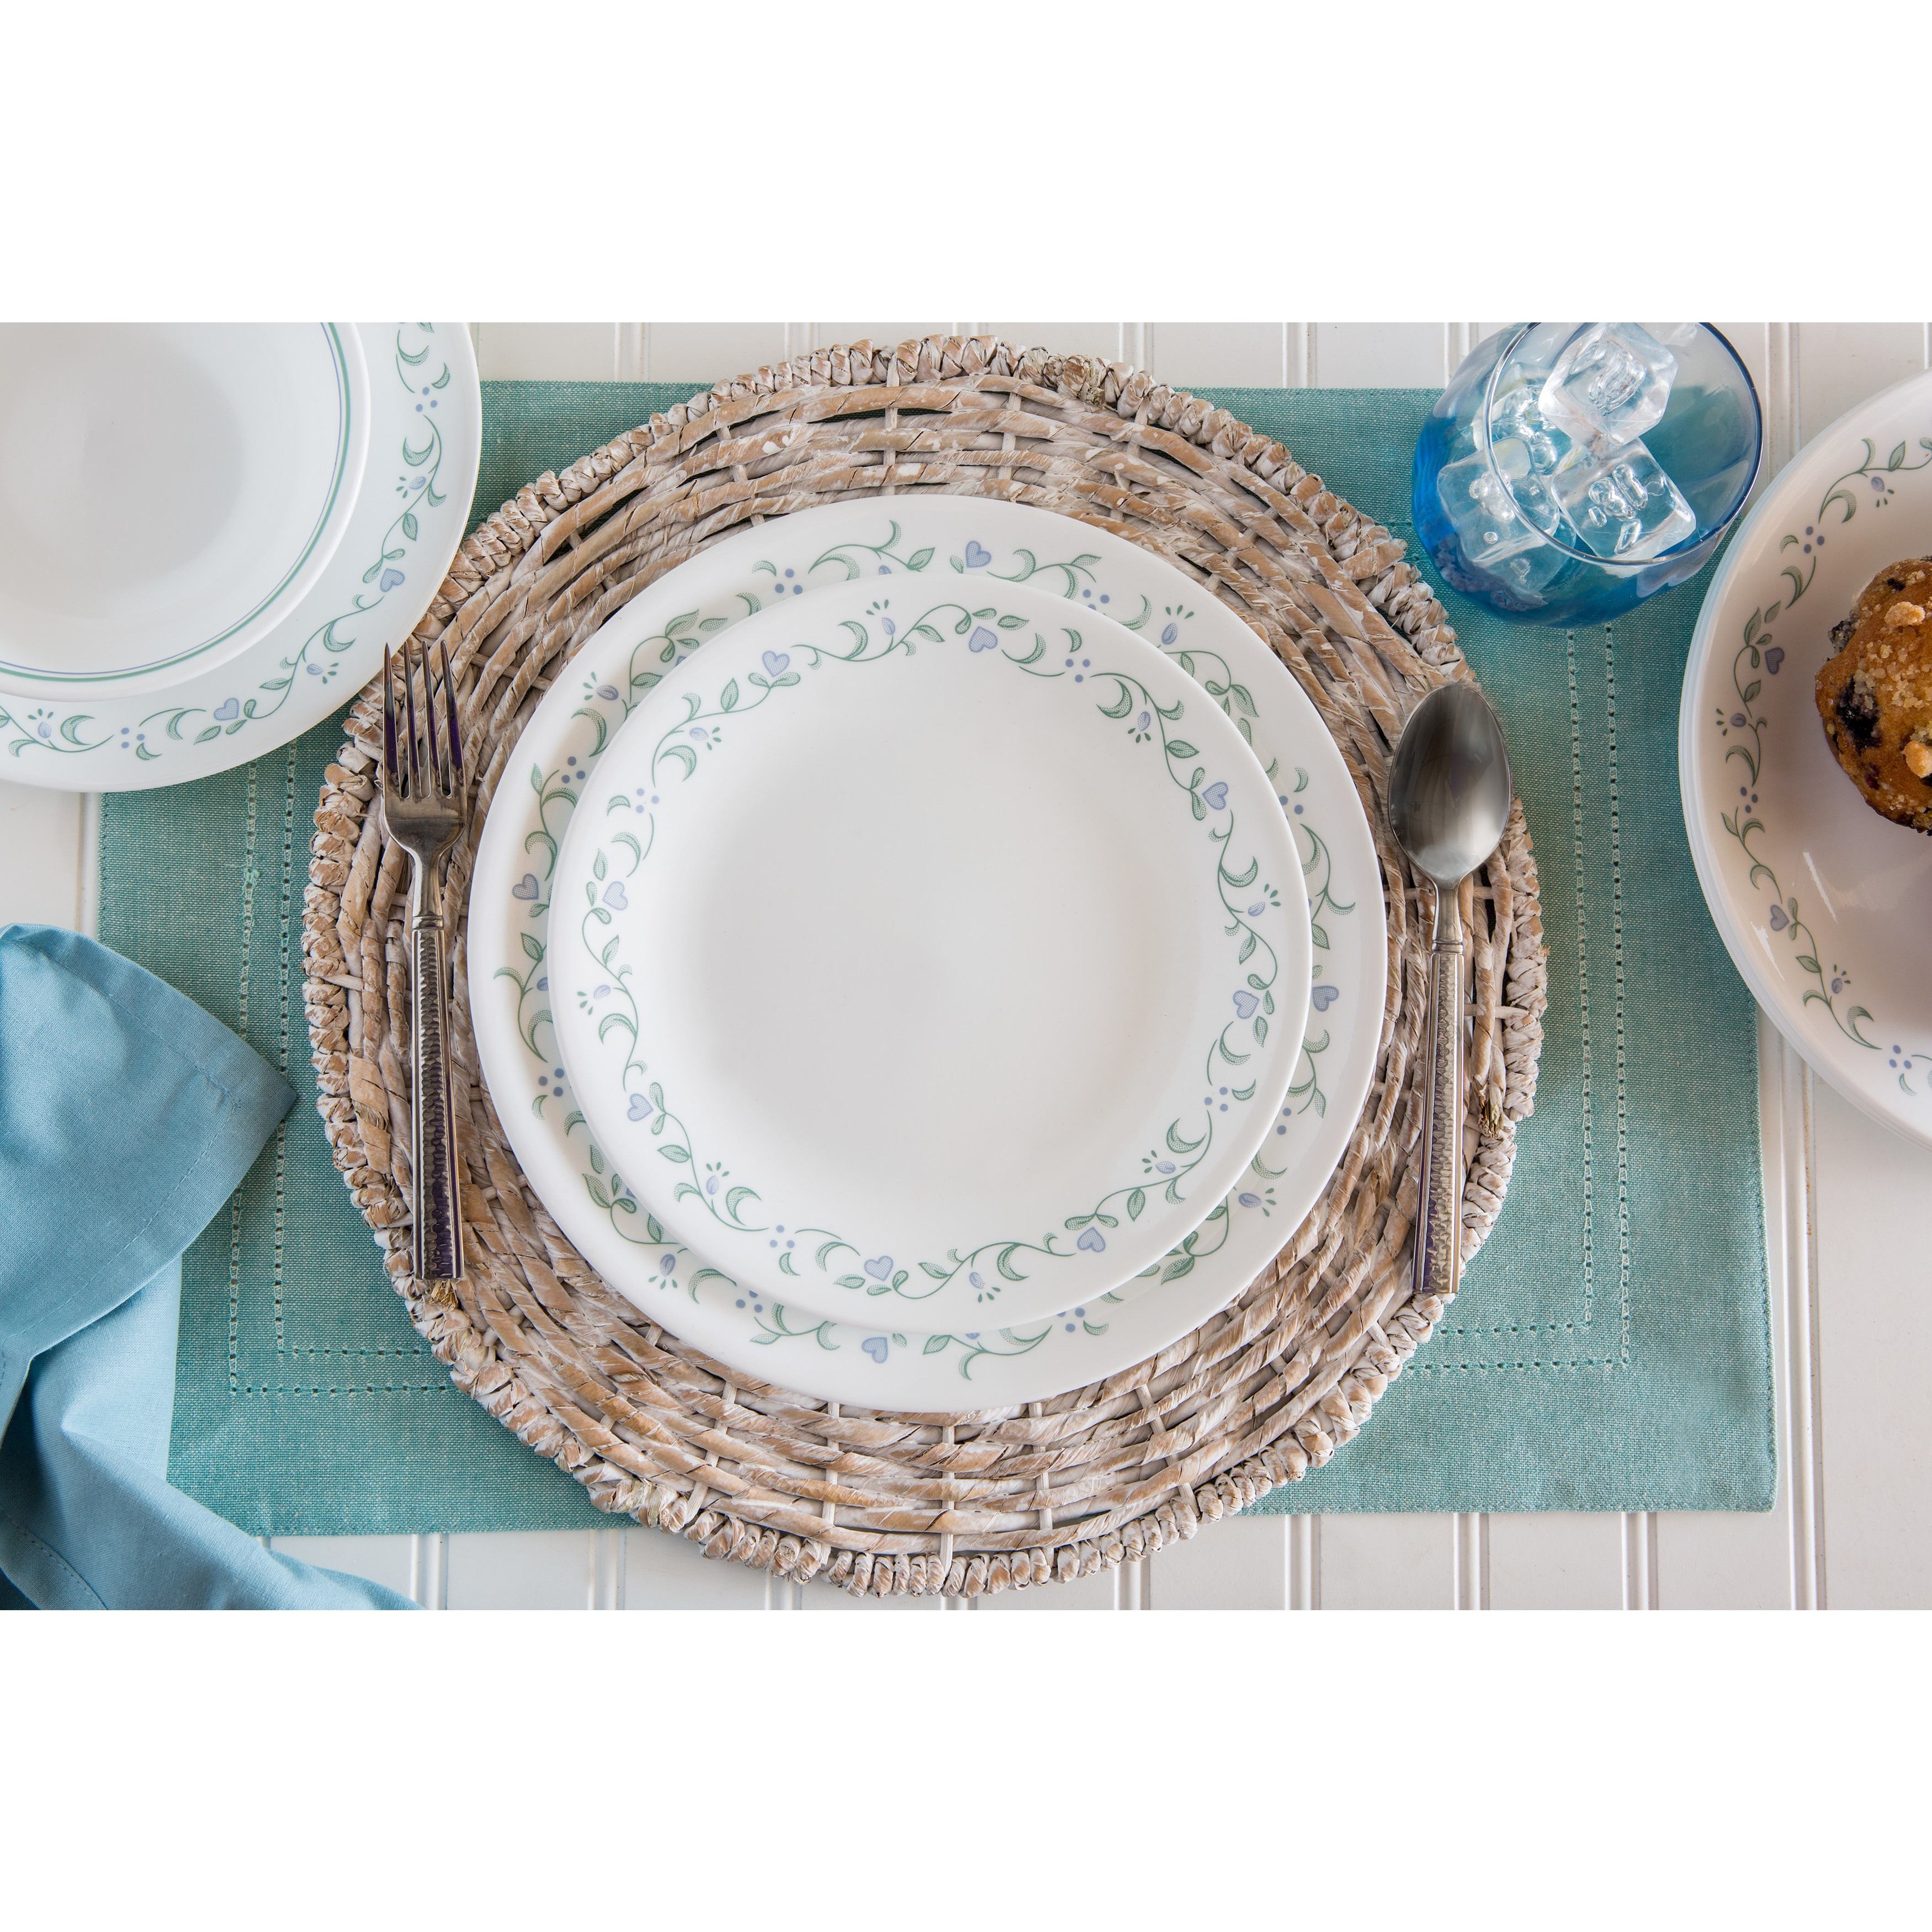 cottage dinnerware dinner designs corelle round new cottages cor wfw country dishes sets official com set drinkware serveware dw